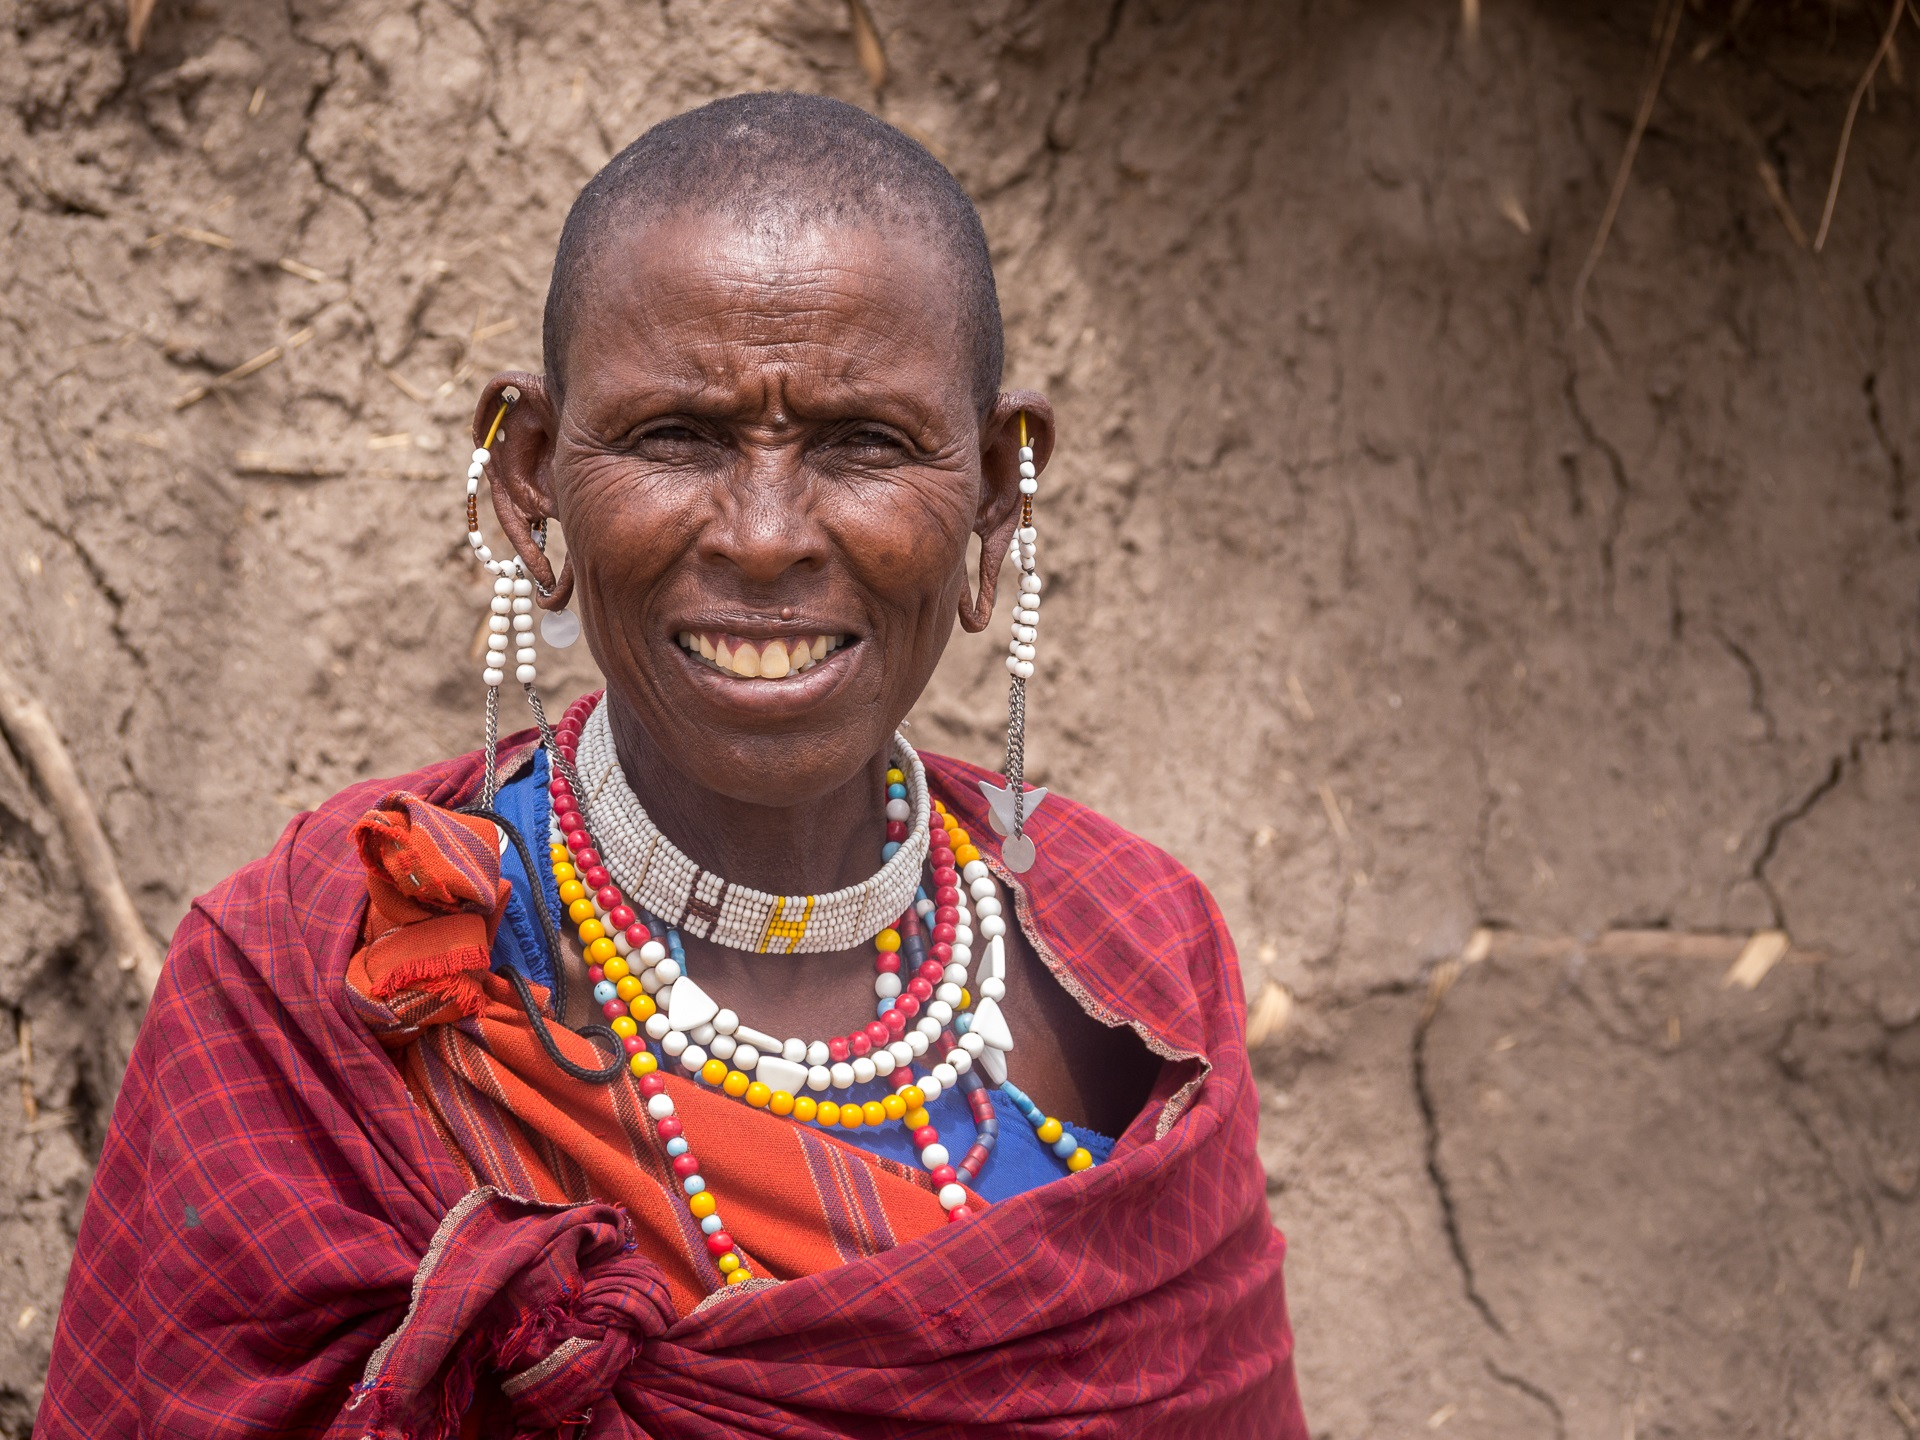 Maasai Woman. Photo credit: A_Peach